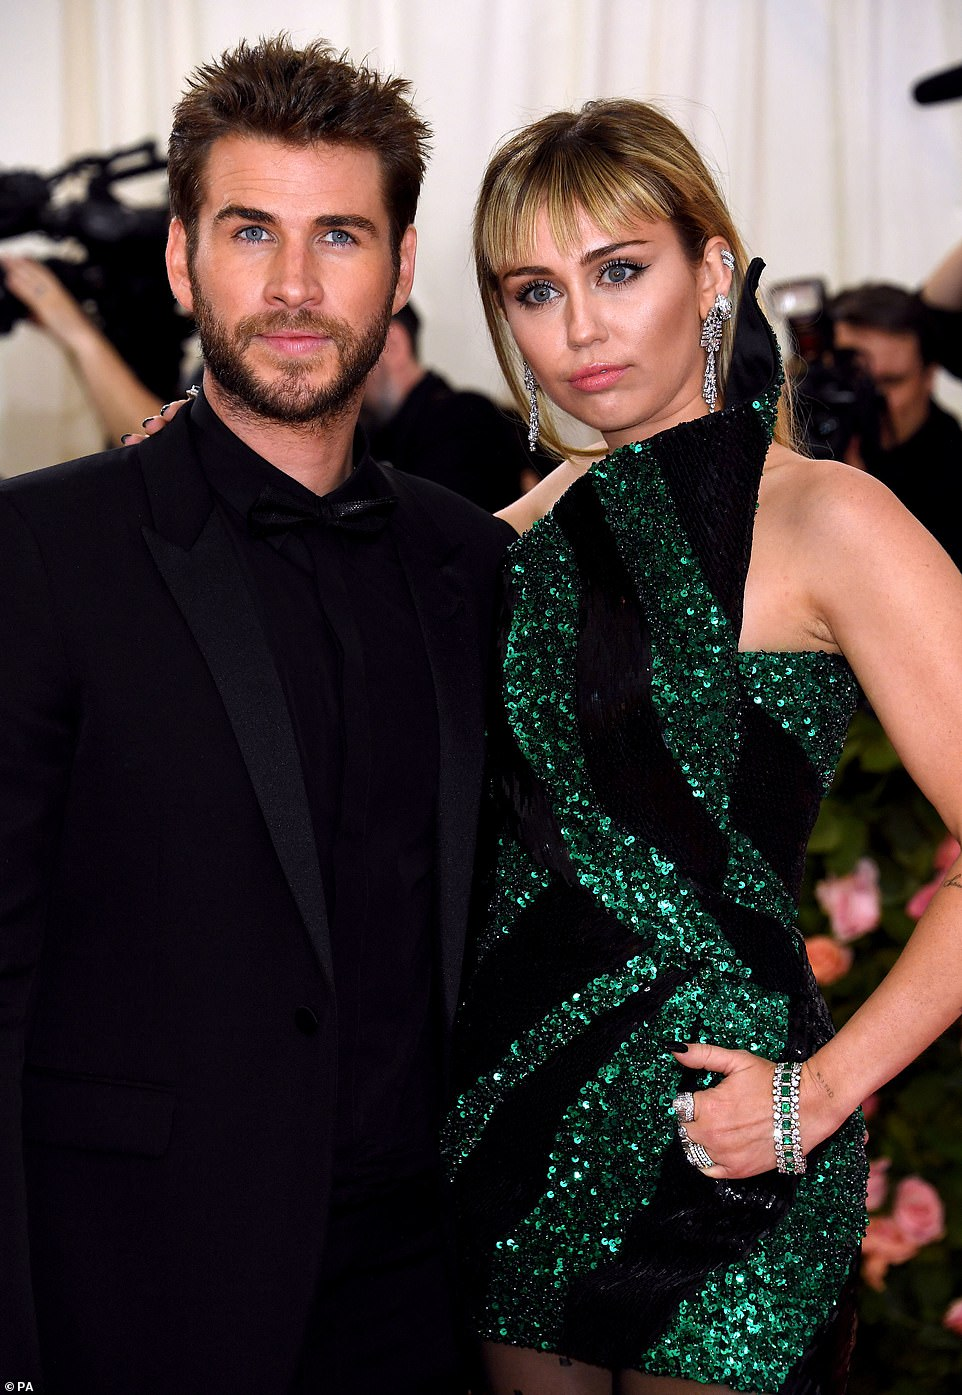 Ex: Cyrus was married to Liam Hemsworth from December 2018 to summer 2019. They're seen in May 2019 above, attending the Met Gala during one of their last public appearances together